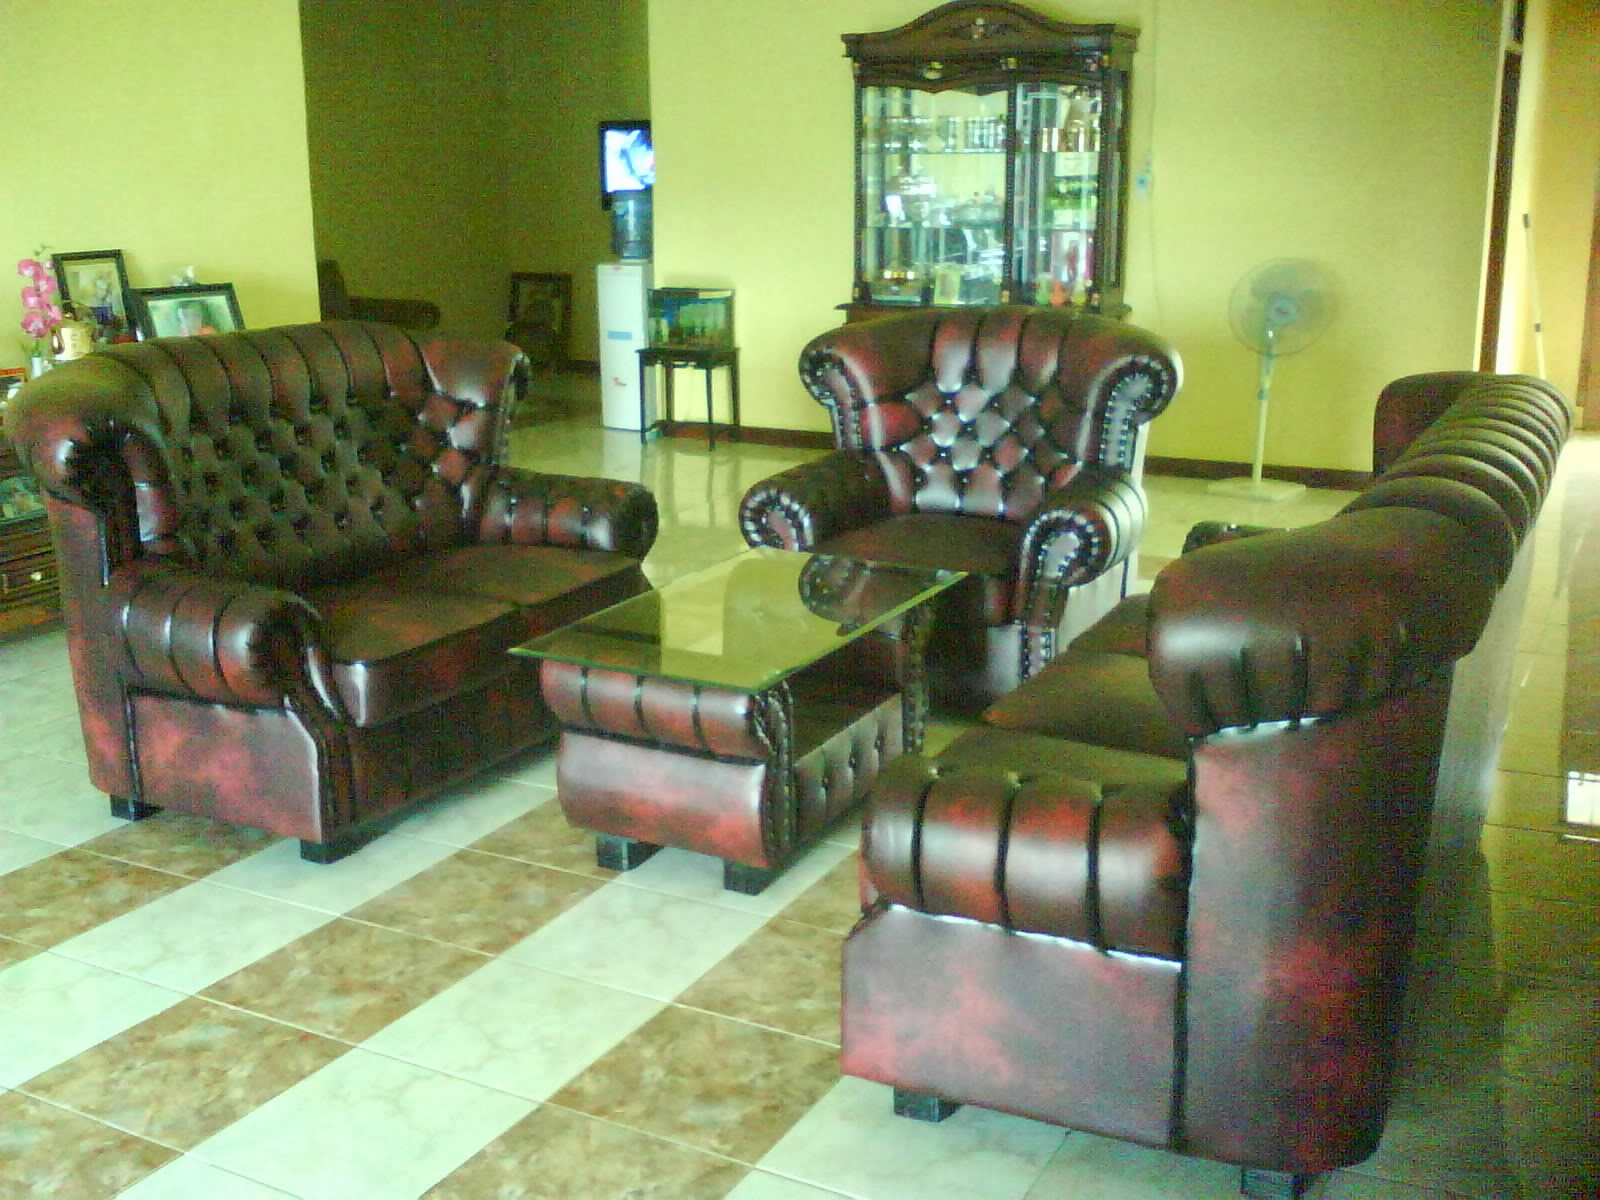 New Beli Furniture Murah Online